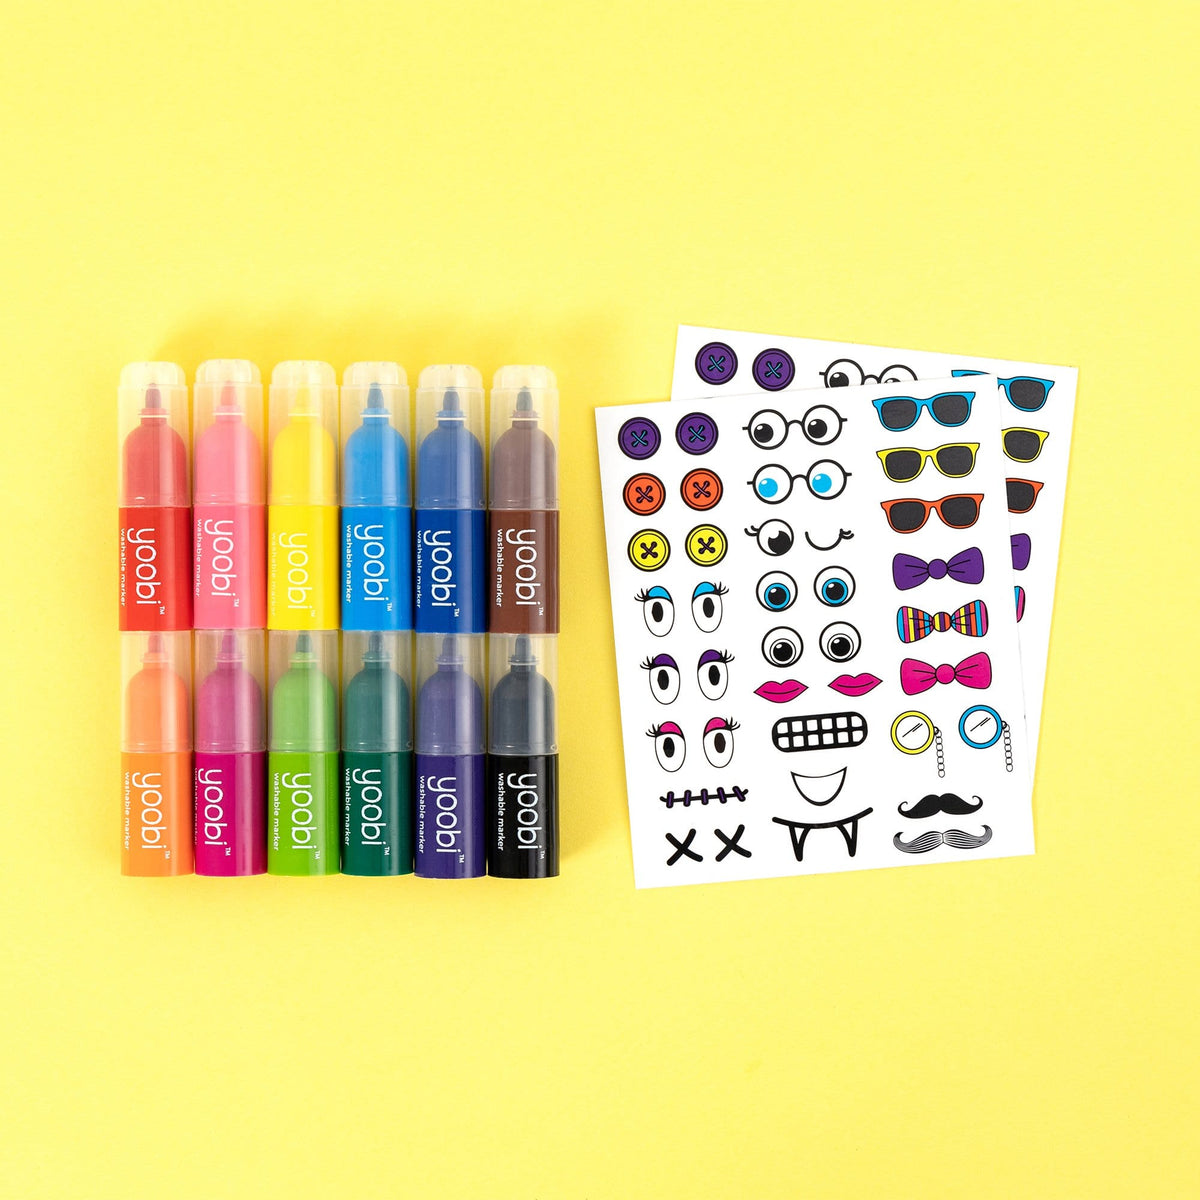 Stackable Markers with Stickers, 12 Pack - Multicolor